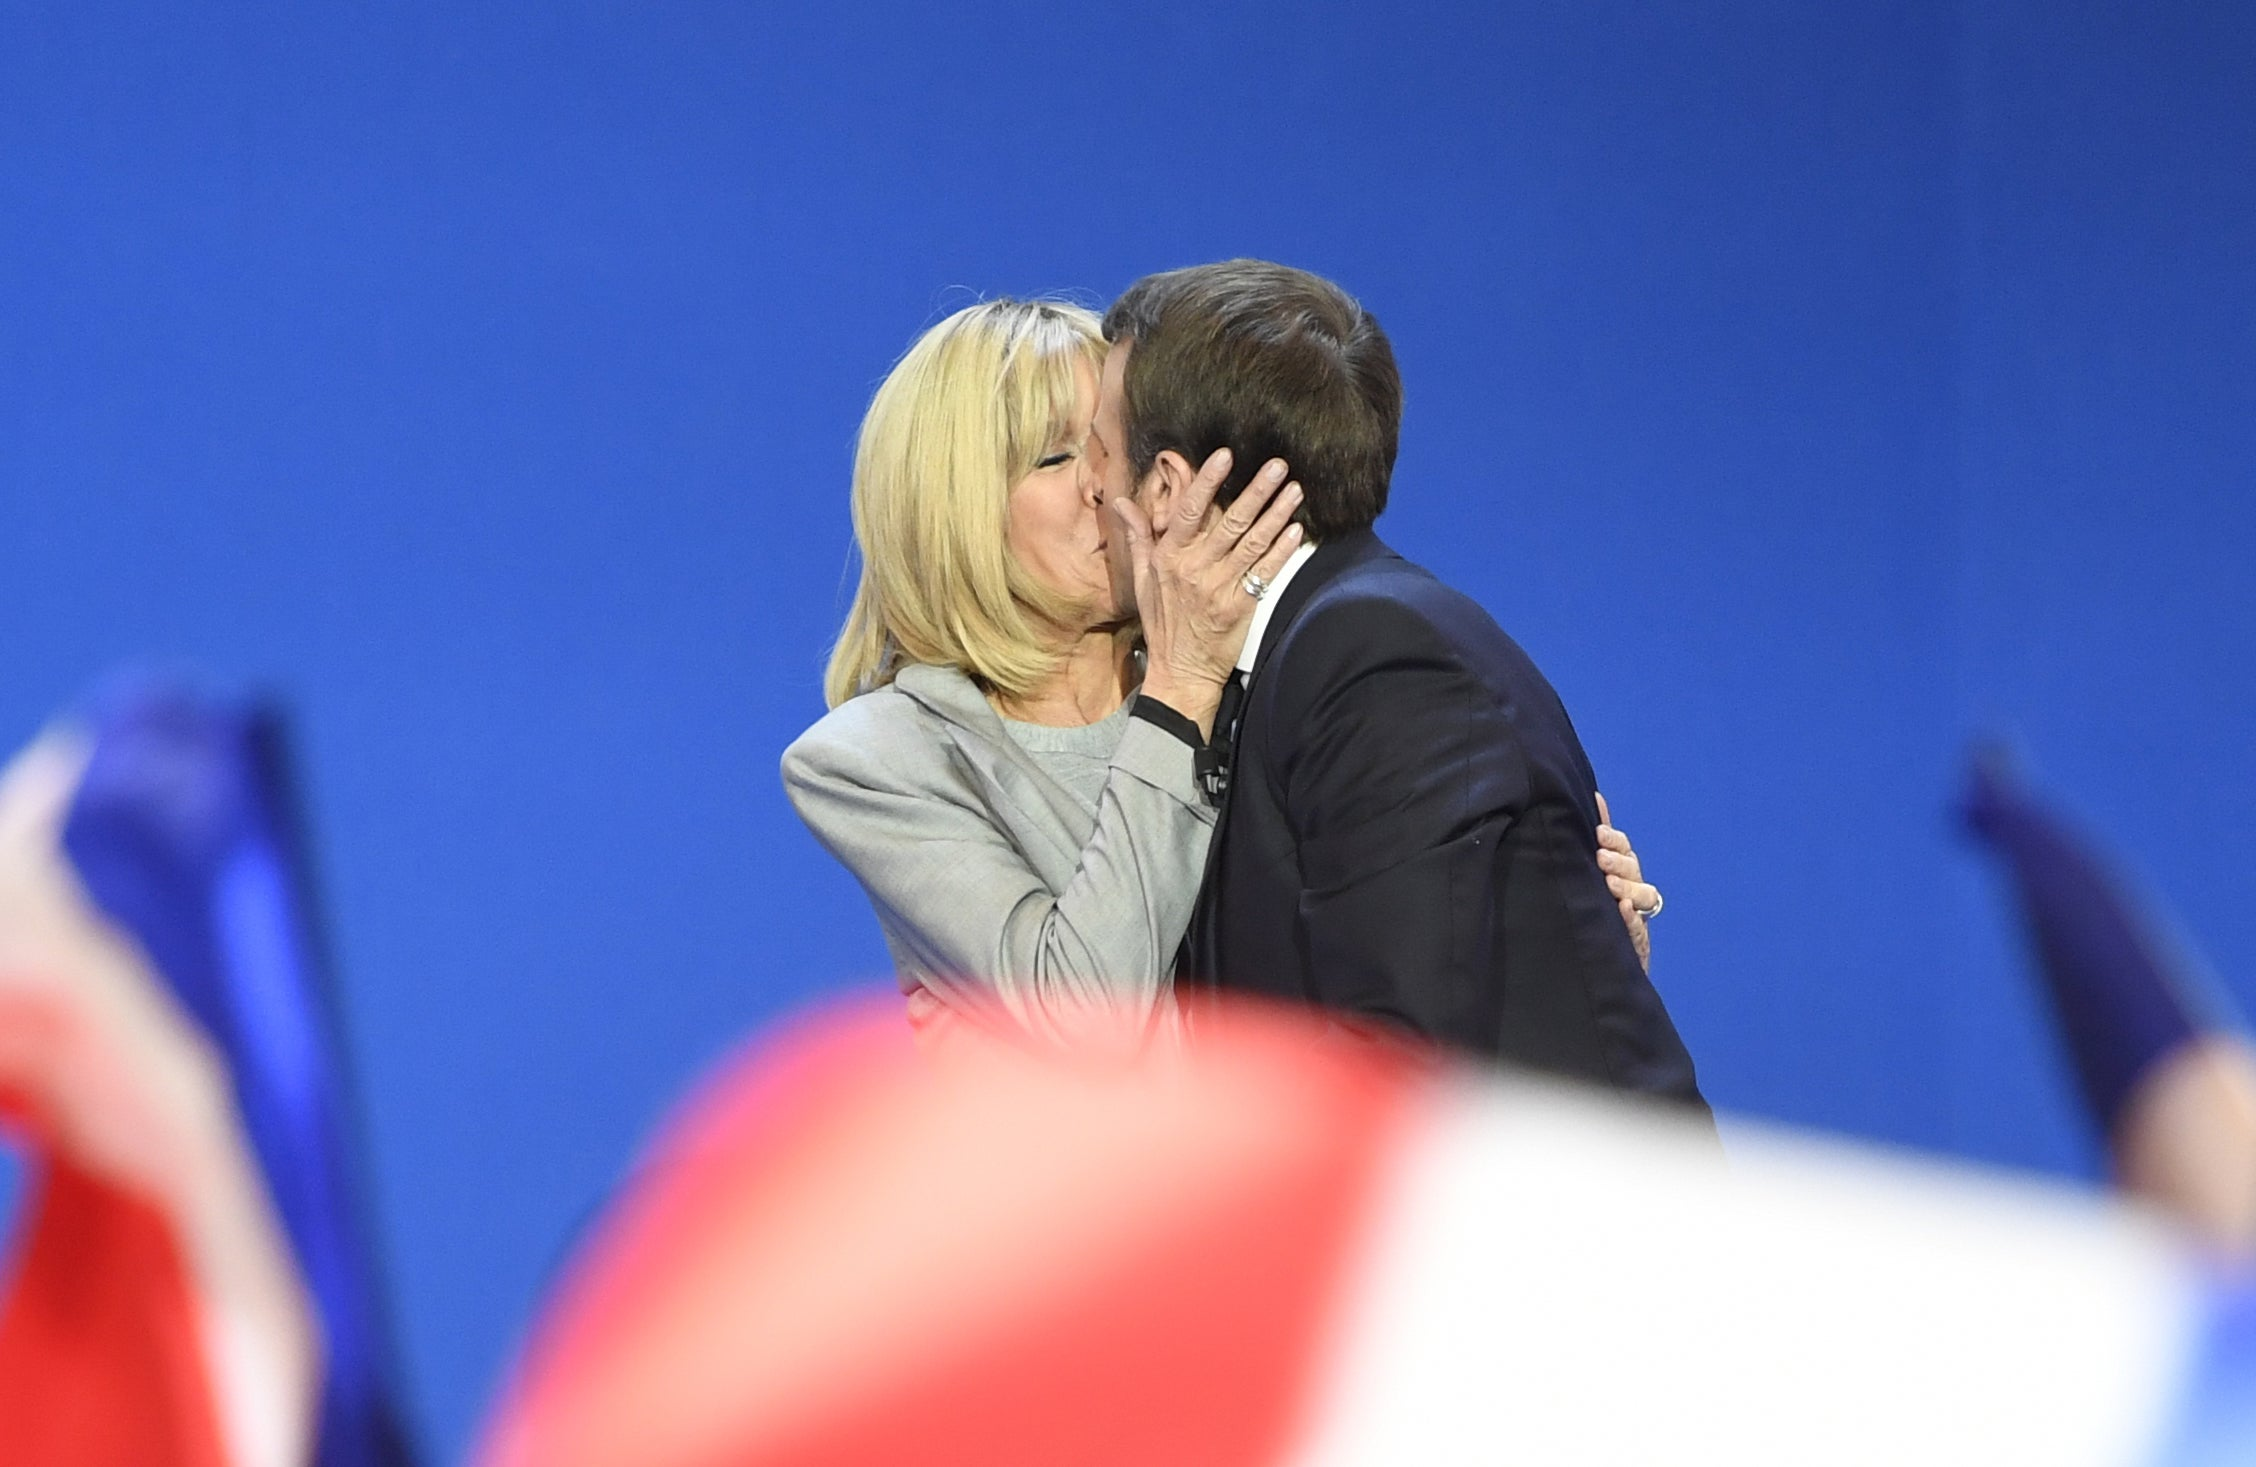 Emmanuel Macron S Relationship With Brigitte Trogneux Began With Kiss On Cheek When He Was 16 The Independent The Independent